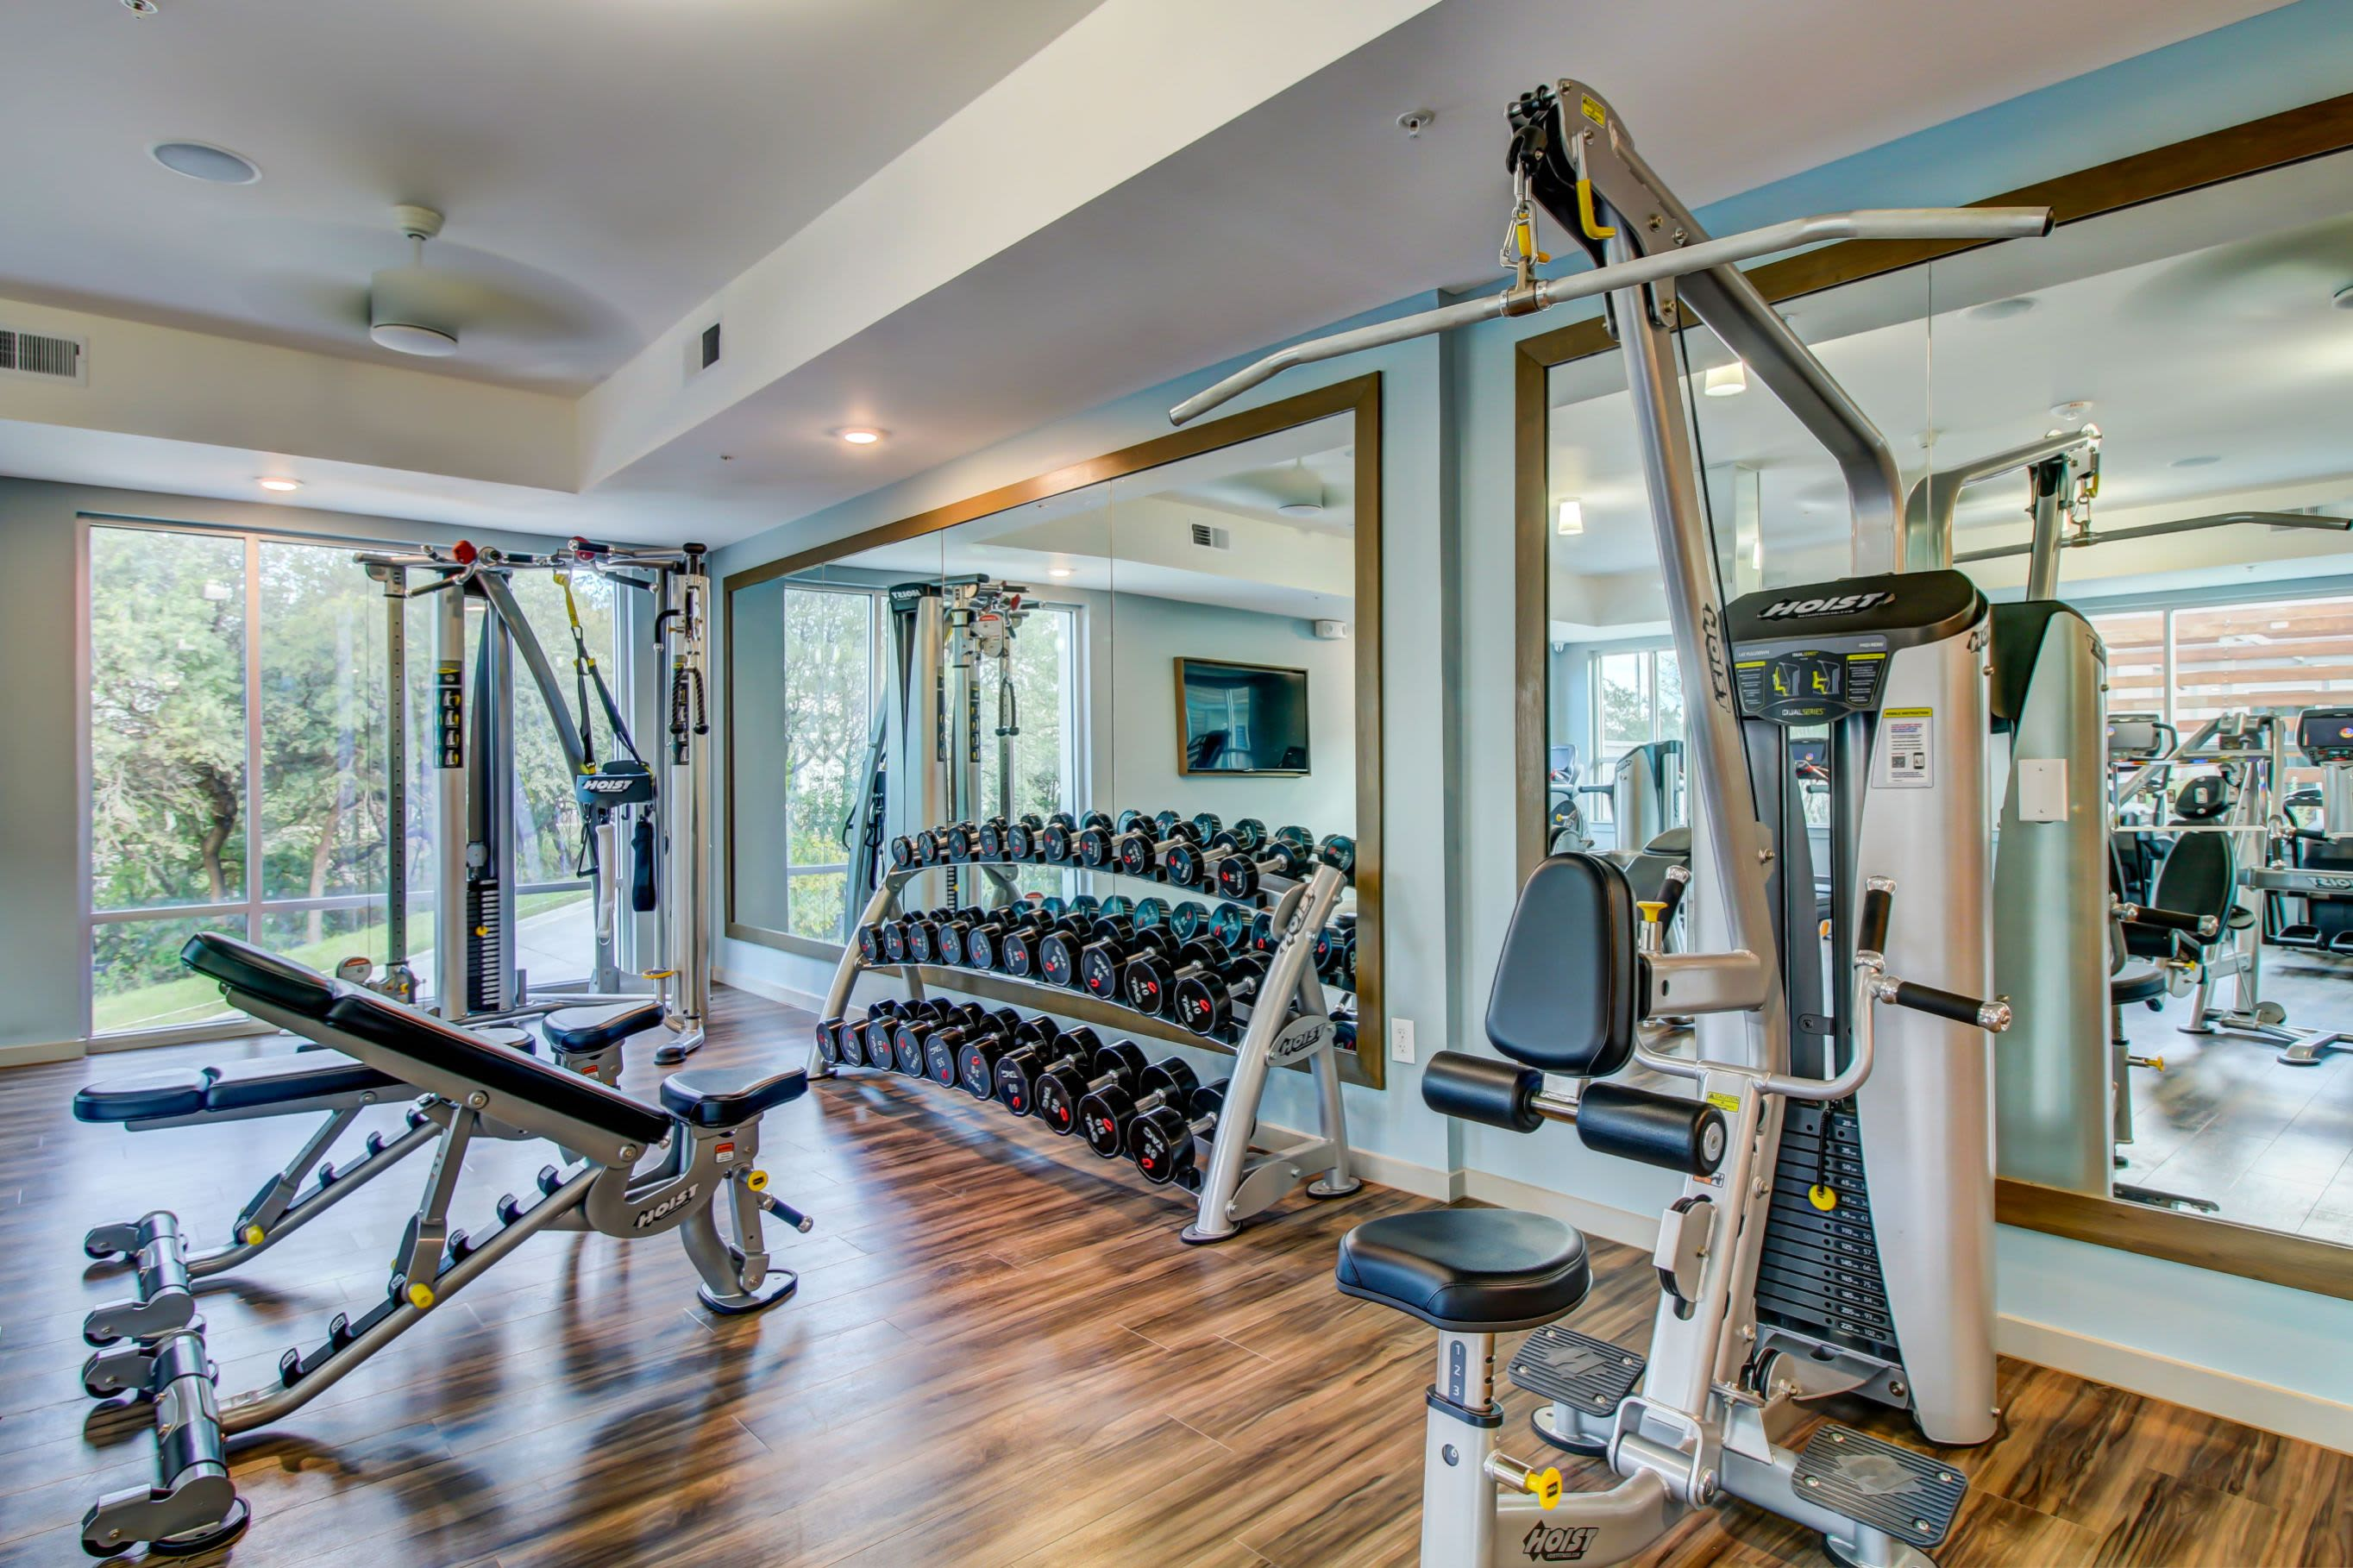 Free weights and machines in the fitness center at Westerly 360 in Austin, Texas